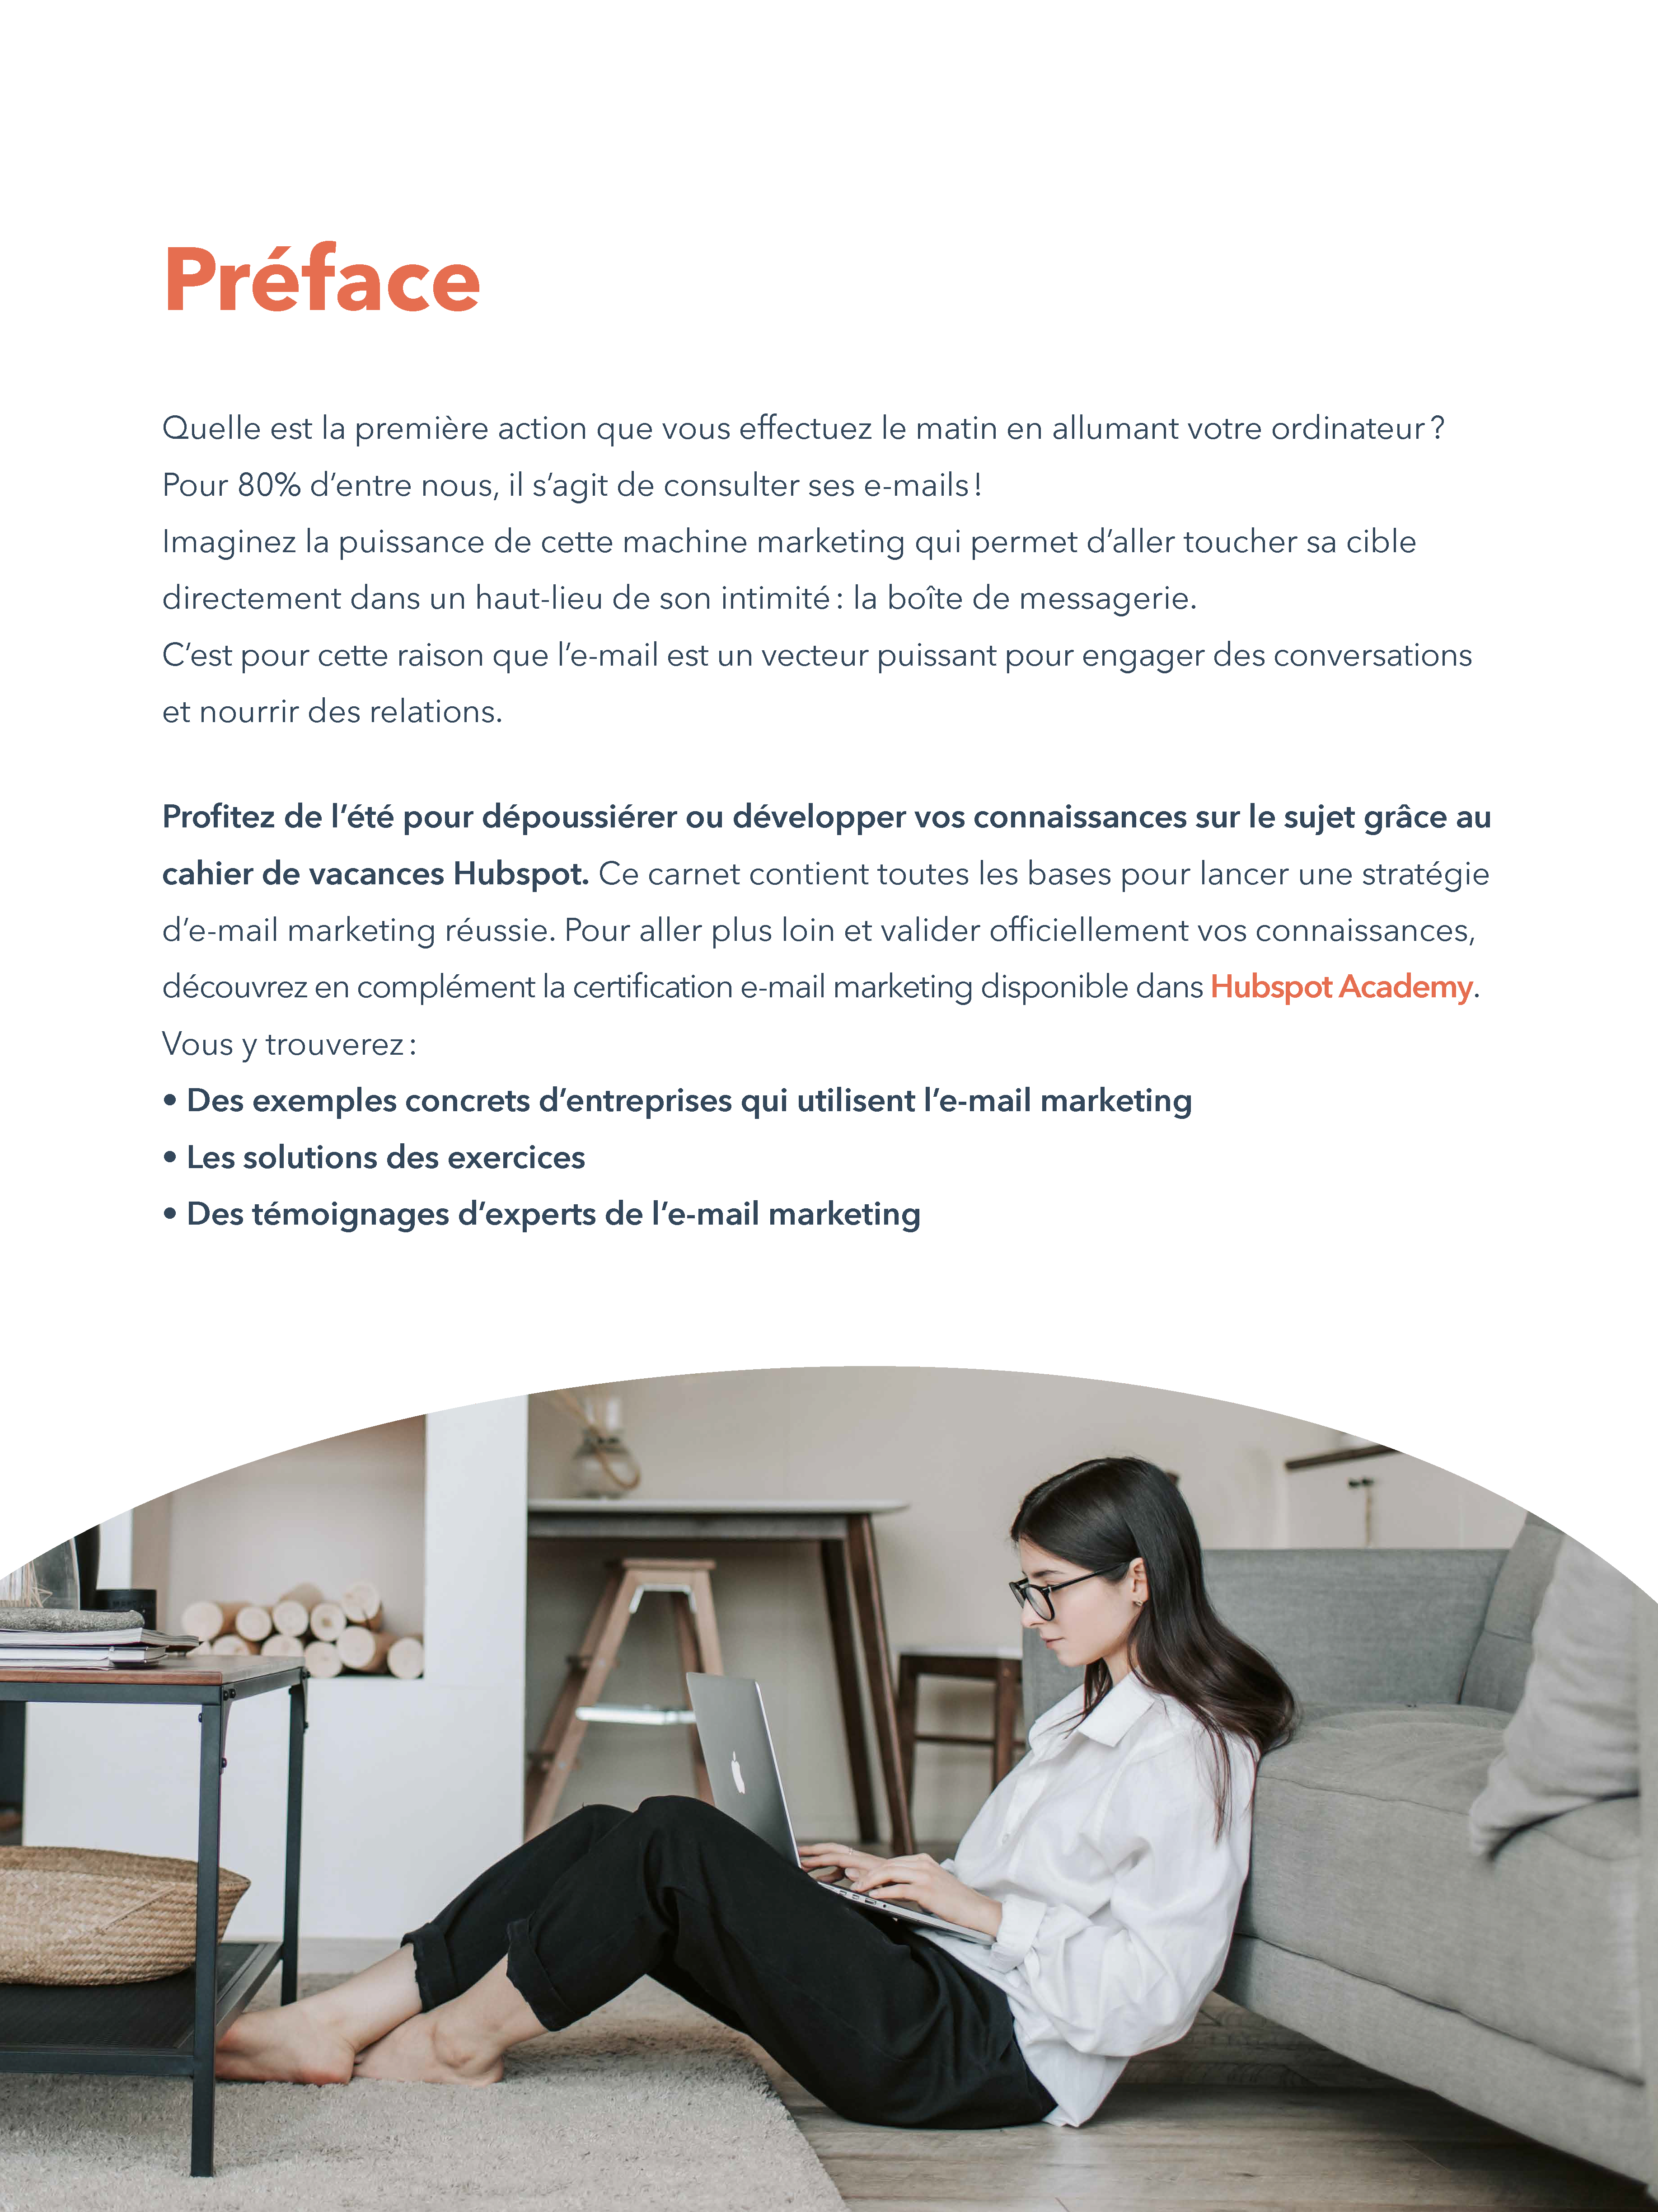 Cahier-vacances-email-marketing-12juin_Page_03